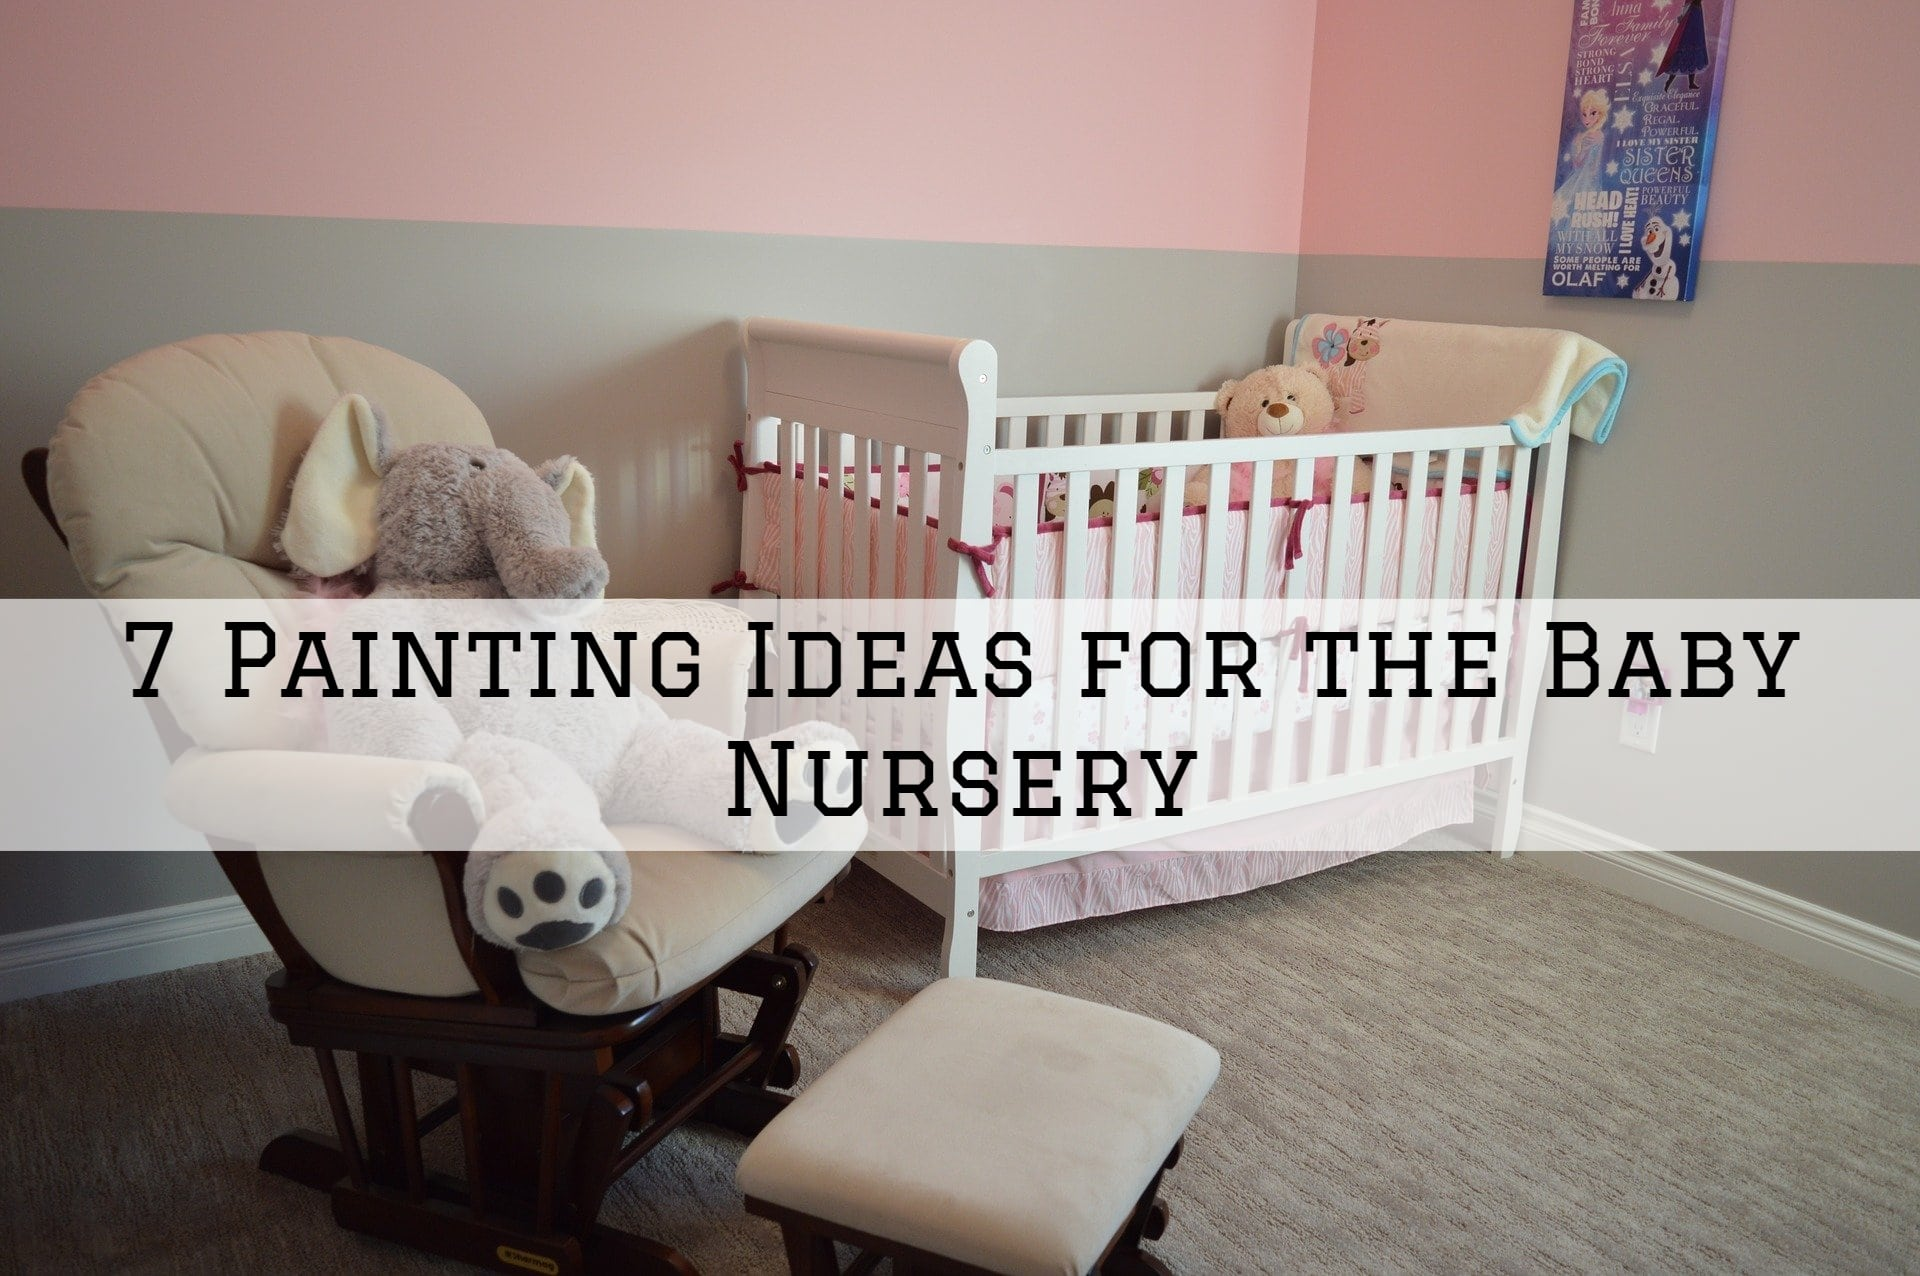 7 Painting Ideas For The Baby Nursery